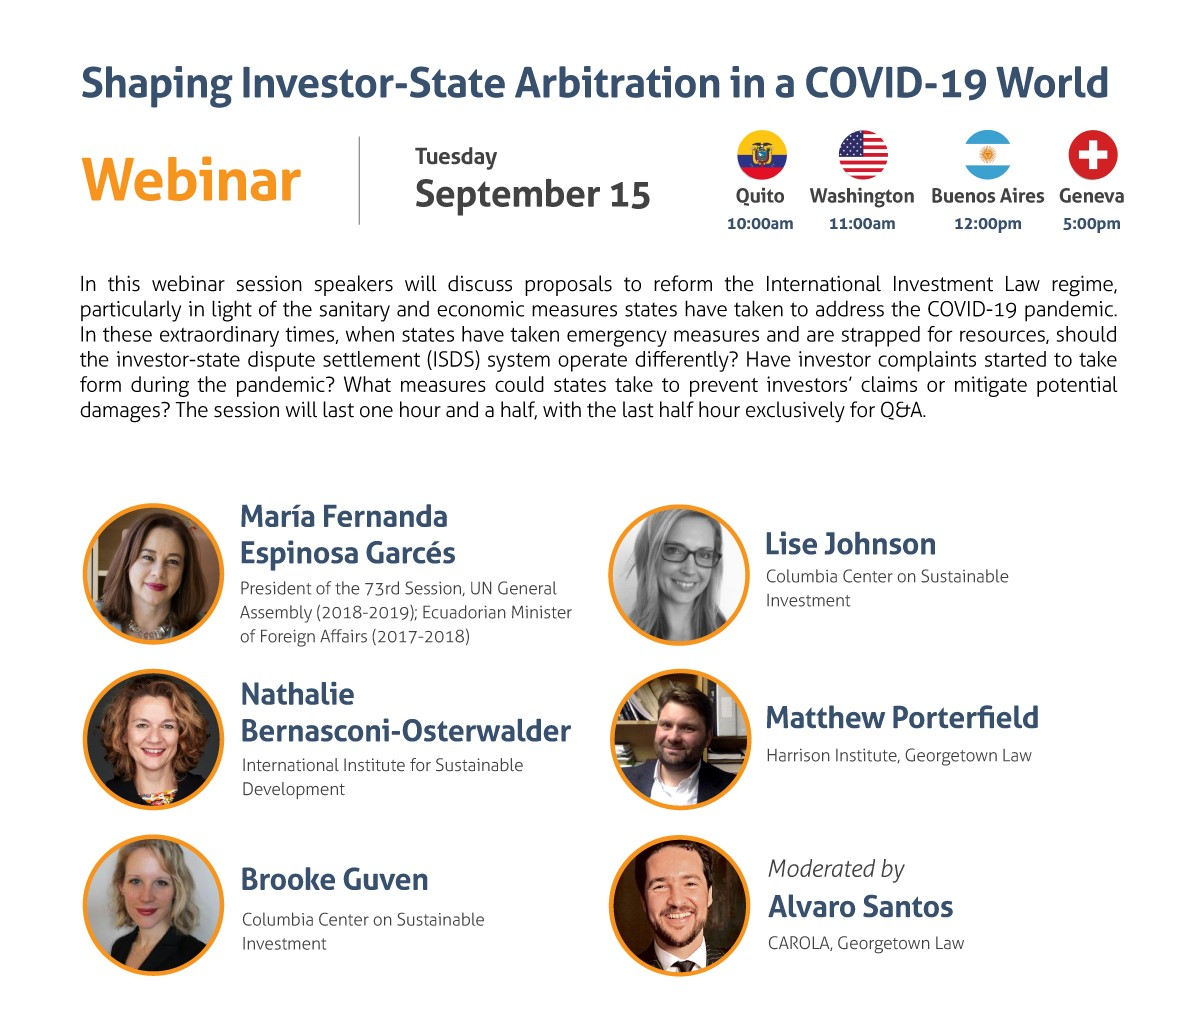 Shaping Investor-State Arbitration in a COVID-19 World Webinar Tuesday, September 15 10:00 am Quito 11:00 am Washington, DC 12:00 pm Buenos Aires 5:00 pm Geneva In this webinar session speakers will discuss proposals to reform the International Investment Law regime, particularly in light of the sanitary and economic measures states have taken to address the COVID-19 pandemic. In these extraordinary times, when states have taken emergency measures and are strapped for resources, should the investor-state dispute settlement (ISDS) system operate differently? Have investor complaints started to take form during the pandemic? What measures could states take to prevent investors' claims or mitigate potential damages? The session will last one hour and a half, with the last half hour exclusively for Q&A. - María Fernanda Espinosa Garcés, President of the 73rd Session, UN General Assembly (2018-2019); Ecuadorian Minister of Foreign Affairs (2017-2018) - Nathalie Bernasconi-Osterwalder, International Institute for Sustainable Development - Brooke Guven, Columbia Center on Sustainable Investment - Lise Johnson, Columbia Center on Sustainable Investment - Matthew Porterfield, Harrison Institute, Georgetown Law Moderated by: Alvaro Santos, CAROLA, Georgetown Law